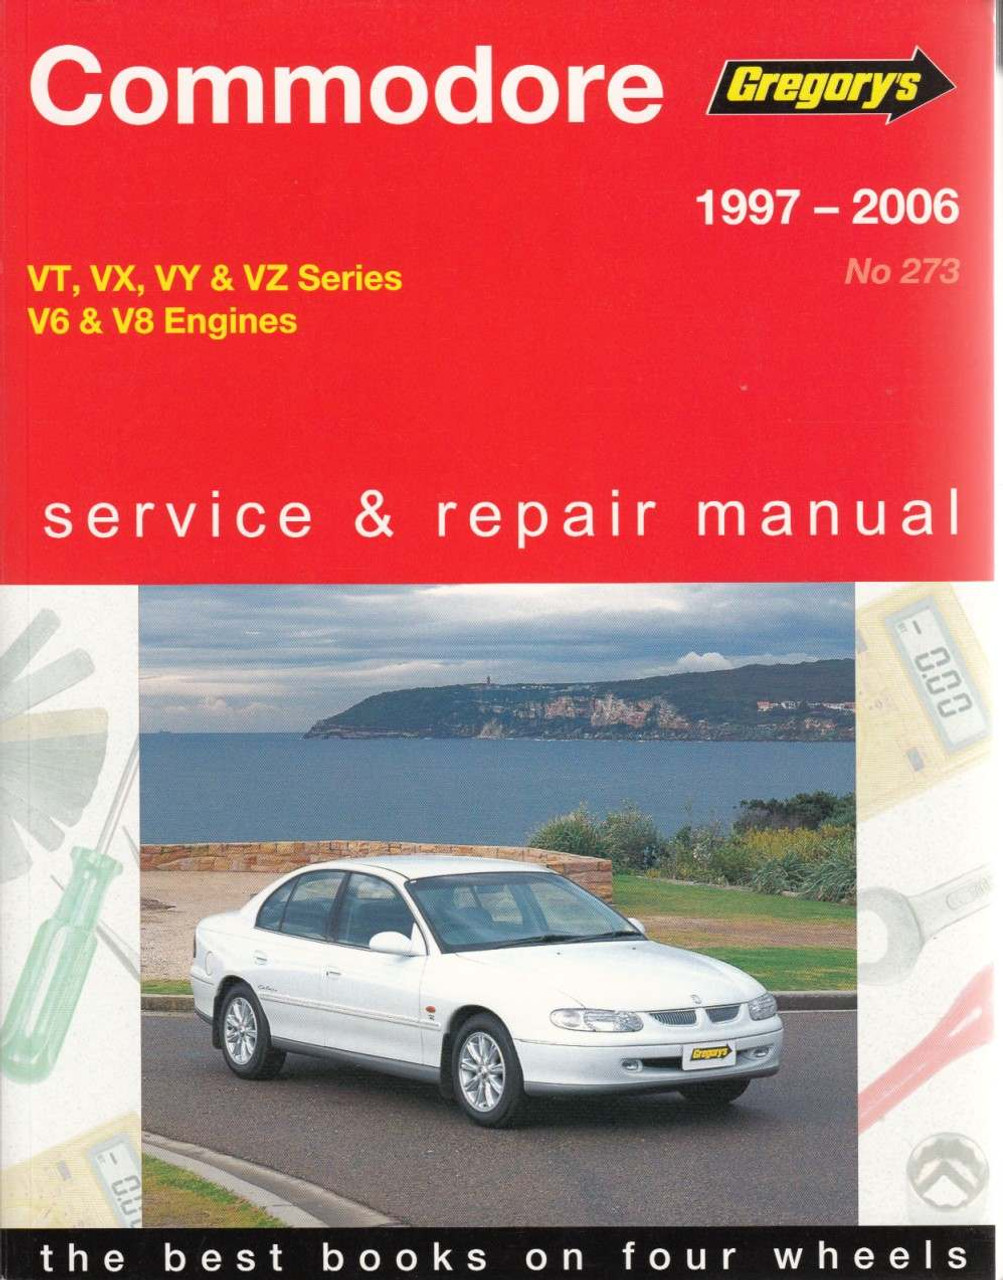 commodore vt workshop manual open source user manual u2022 rh dramatic varieties com Holden vs Caprice Holden Commodore VP